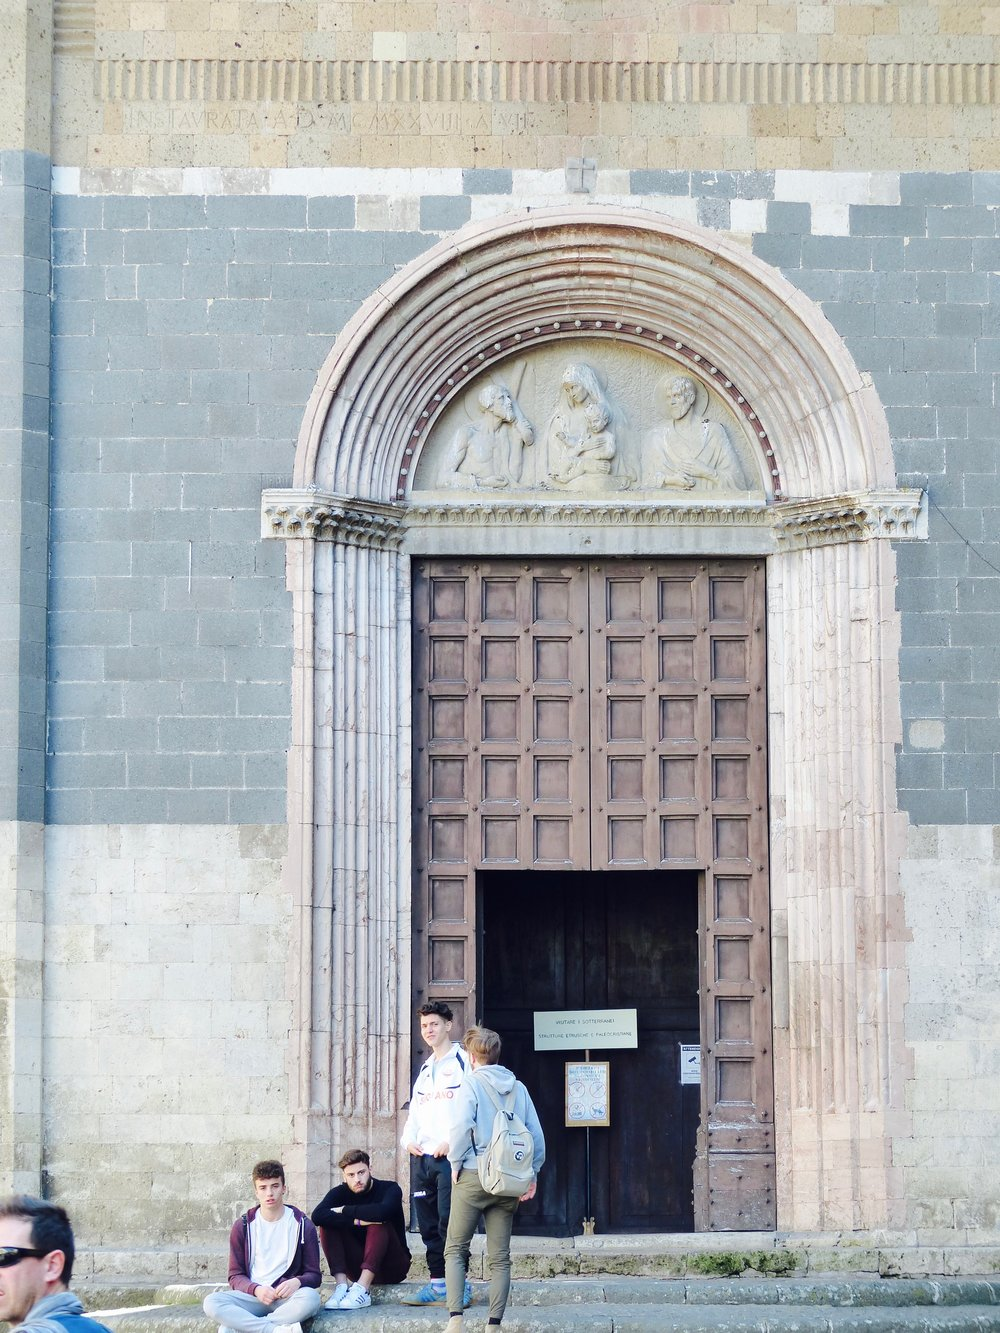 orvieto_church_door.jpg